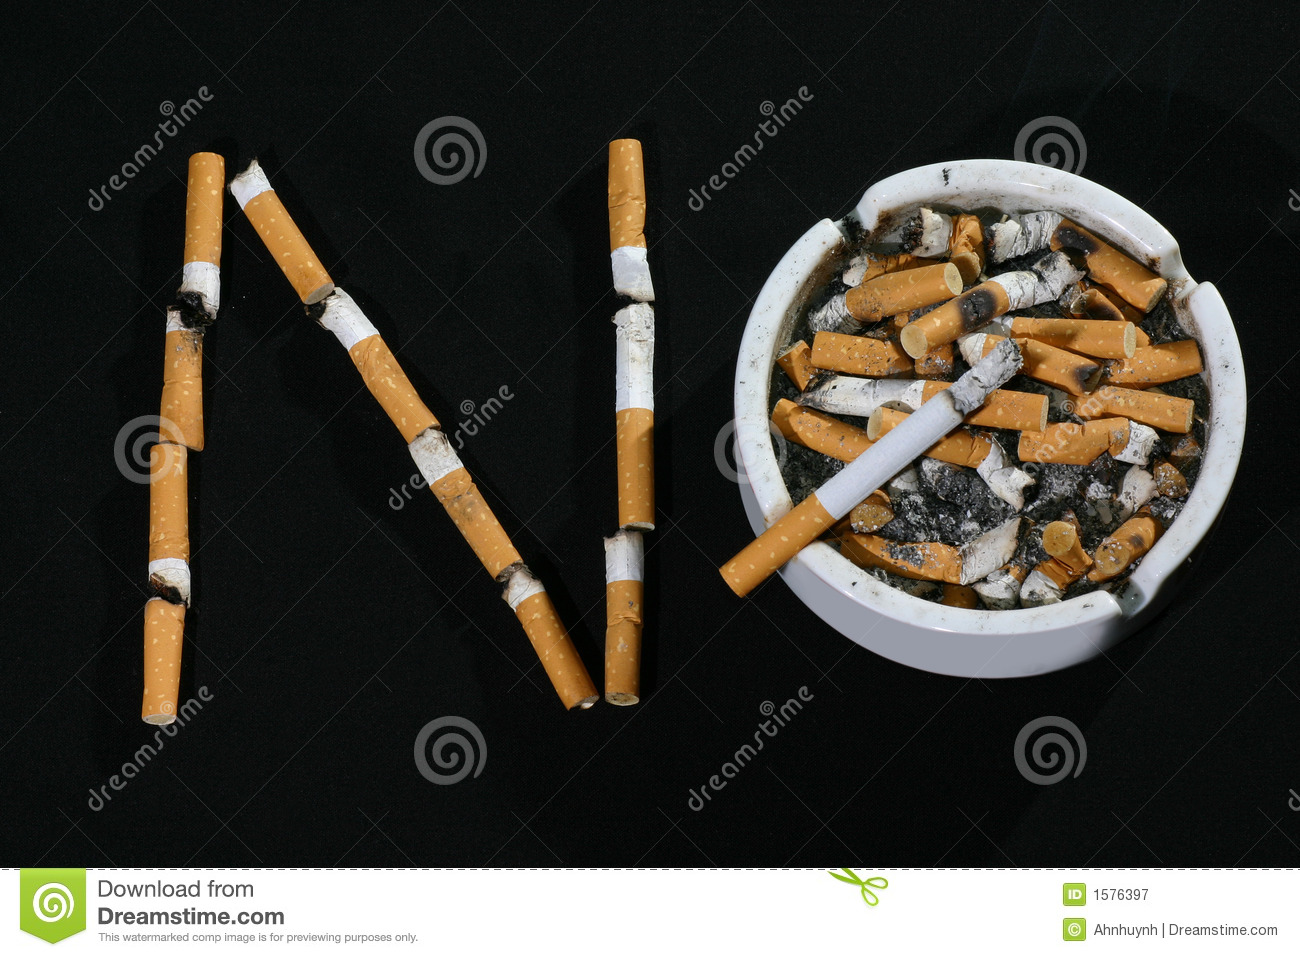 the results of smoking tobacco 2 tobacco control legal consortium 7-09 federal regulation of tobacco: a summary 1 overview background on june 22, 2009, president barack obama signed into law the family smoking prevention and.